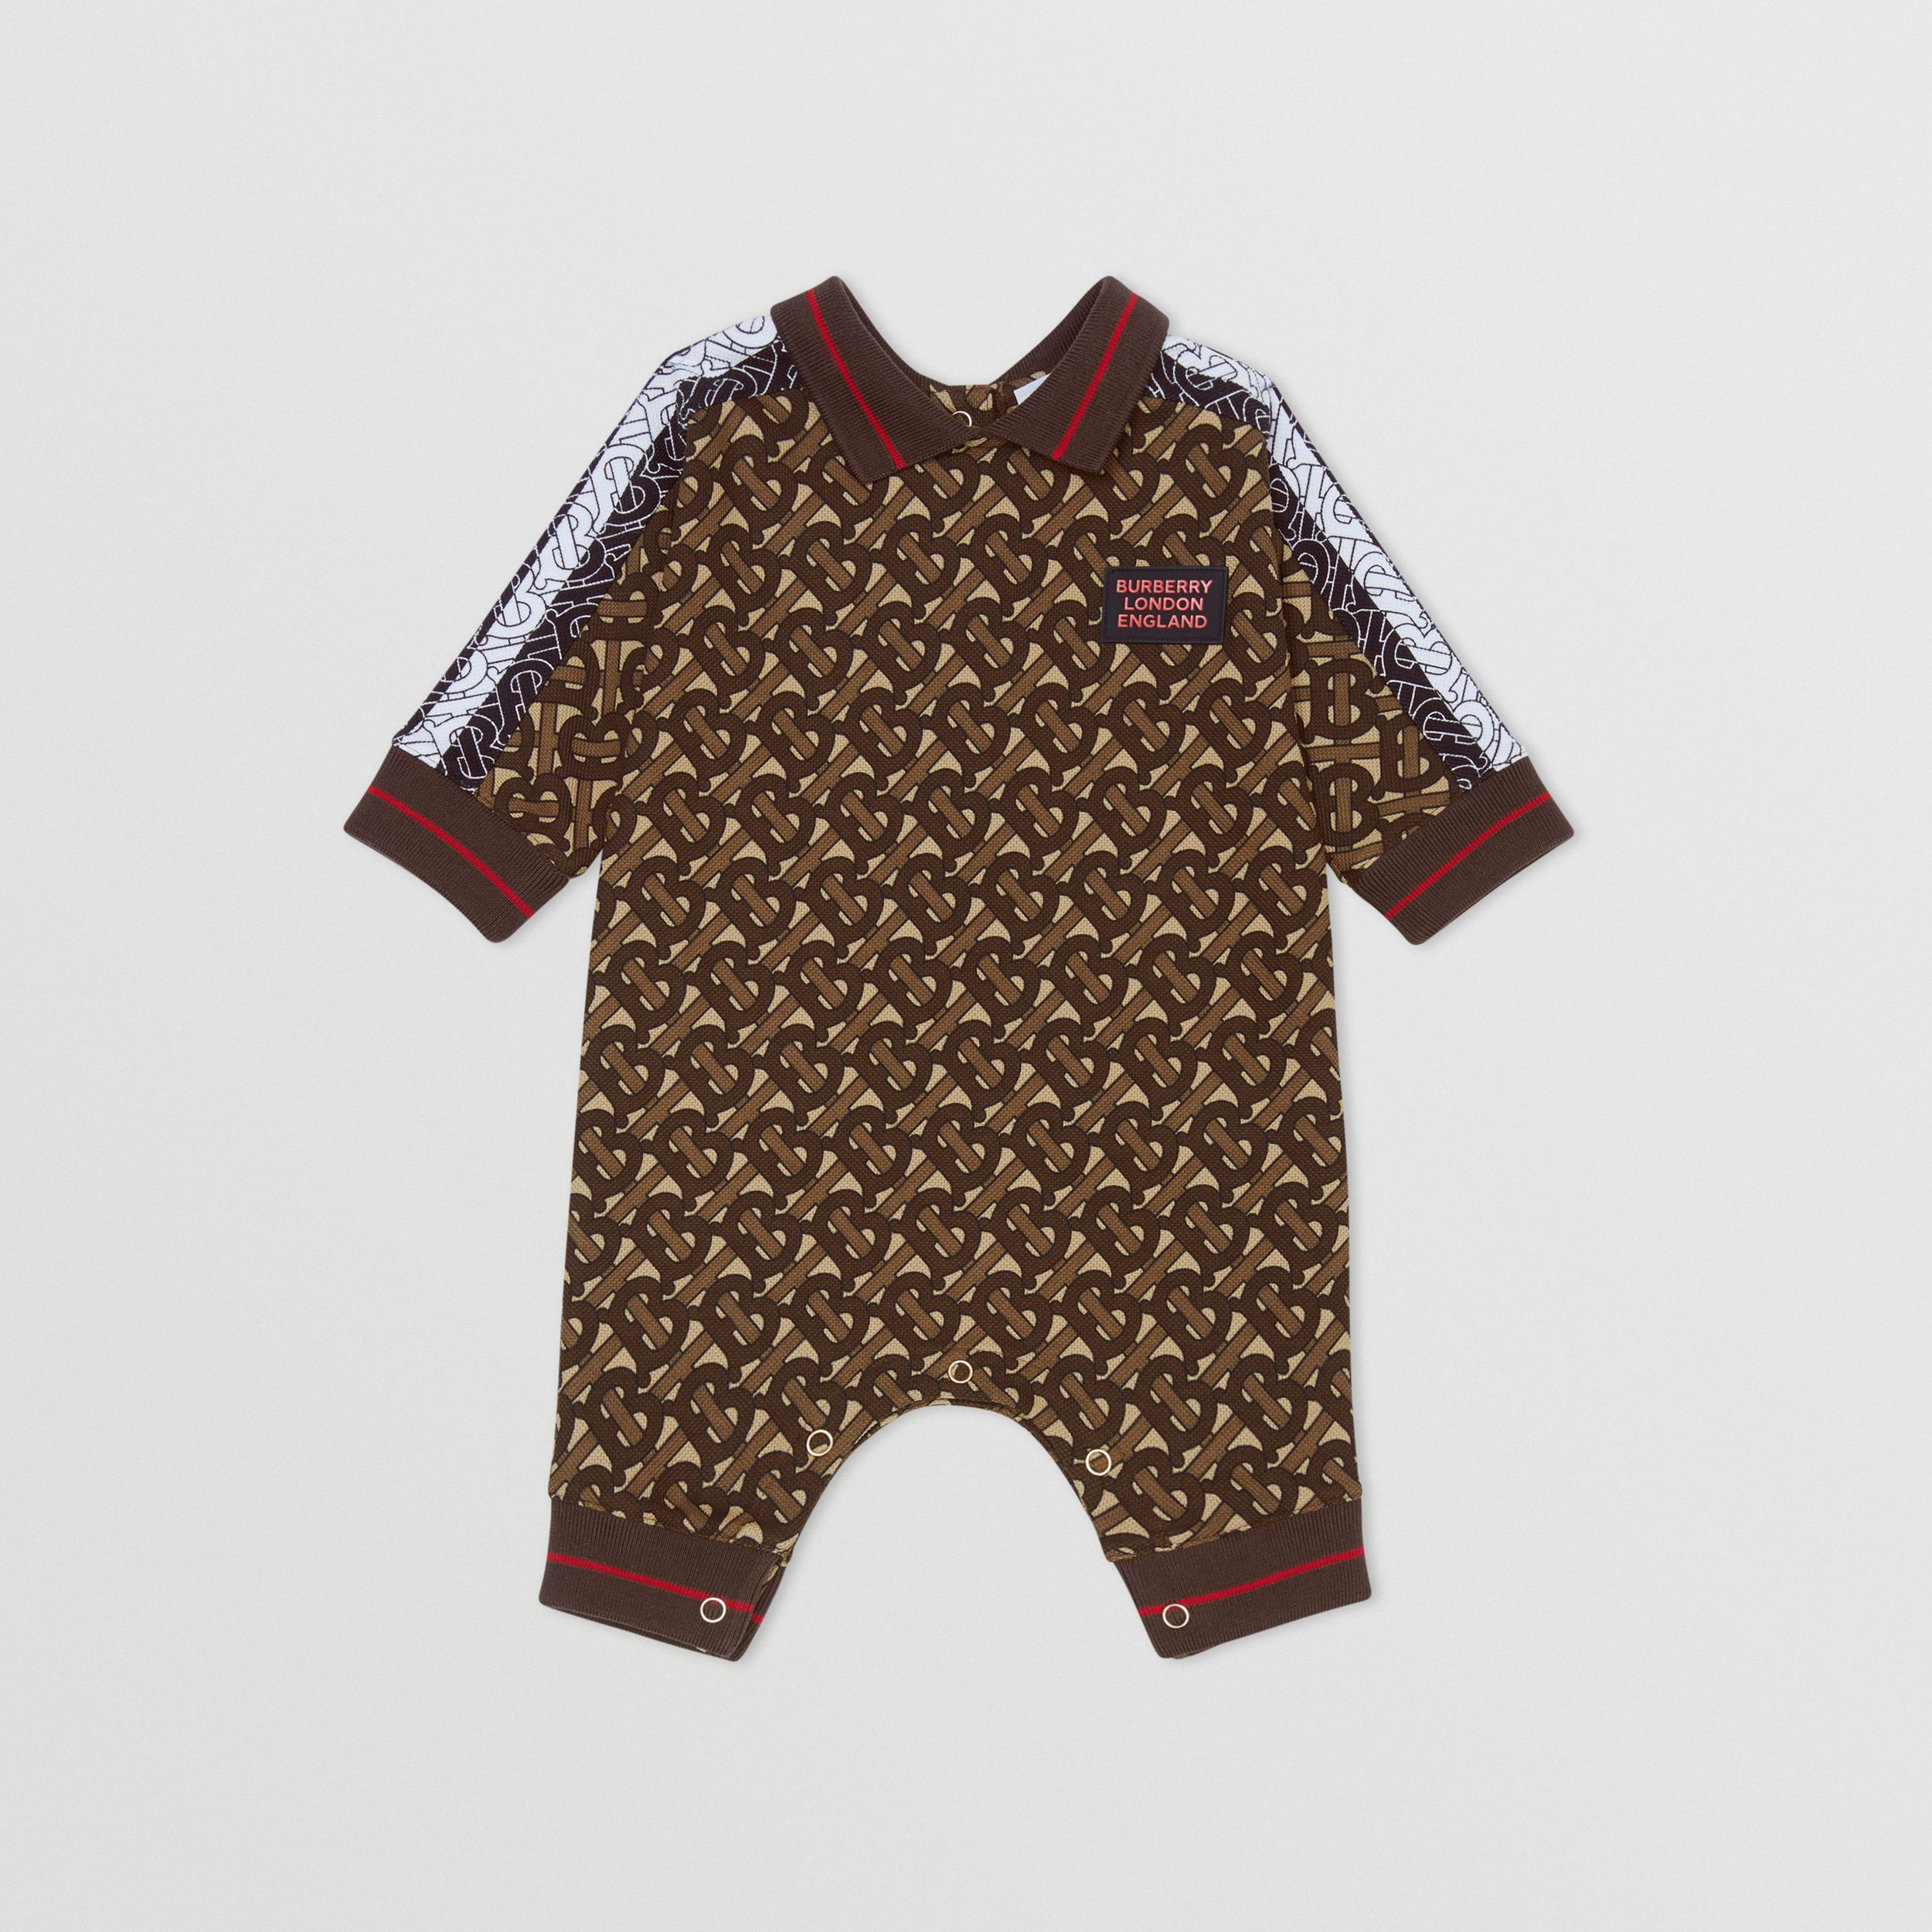 Monogram Stripe Print Cotton Piqué Jumpsuit in Bridle Brown - Children | Burberry Hong Kong S.A.R. - 1